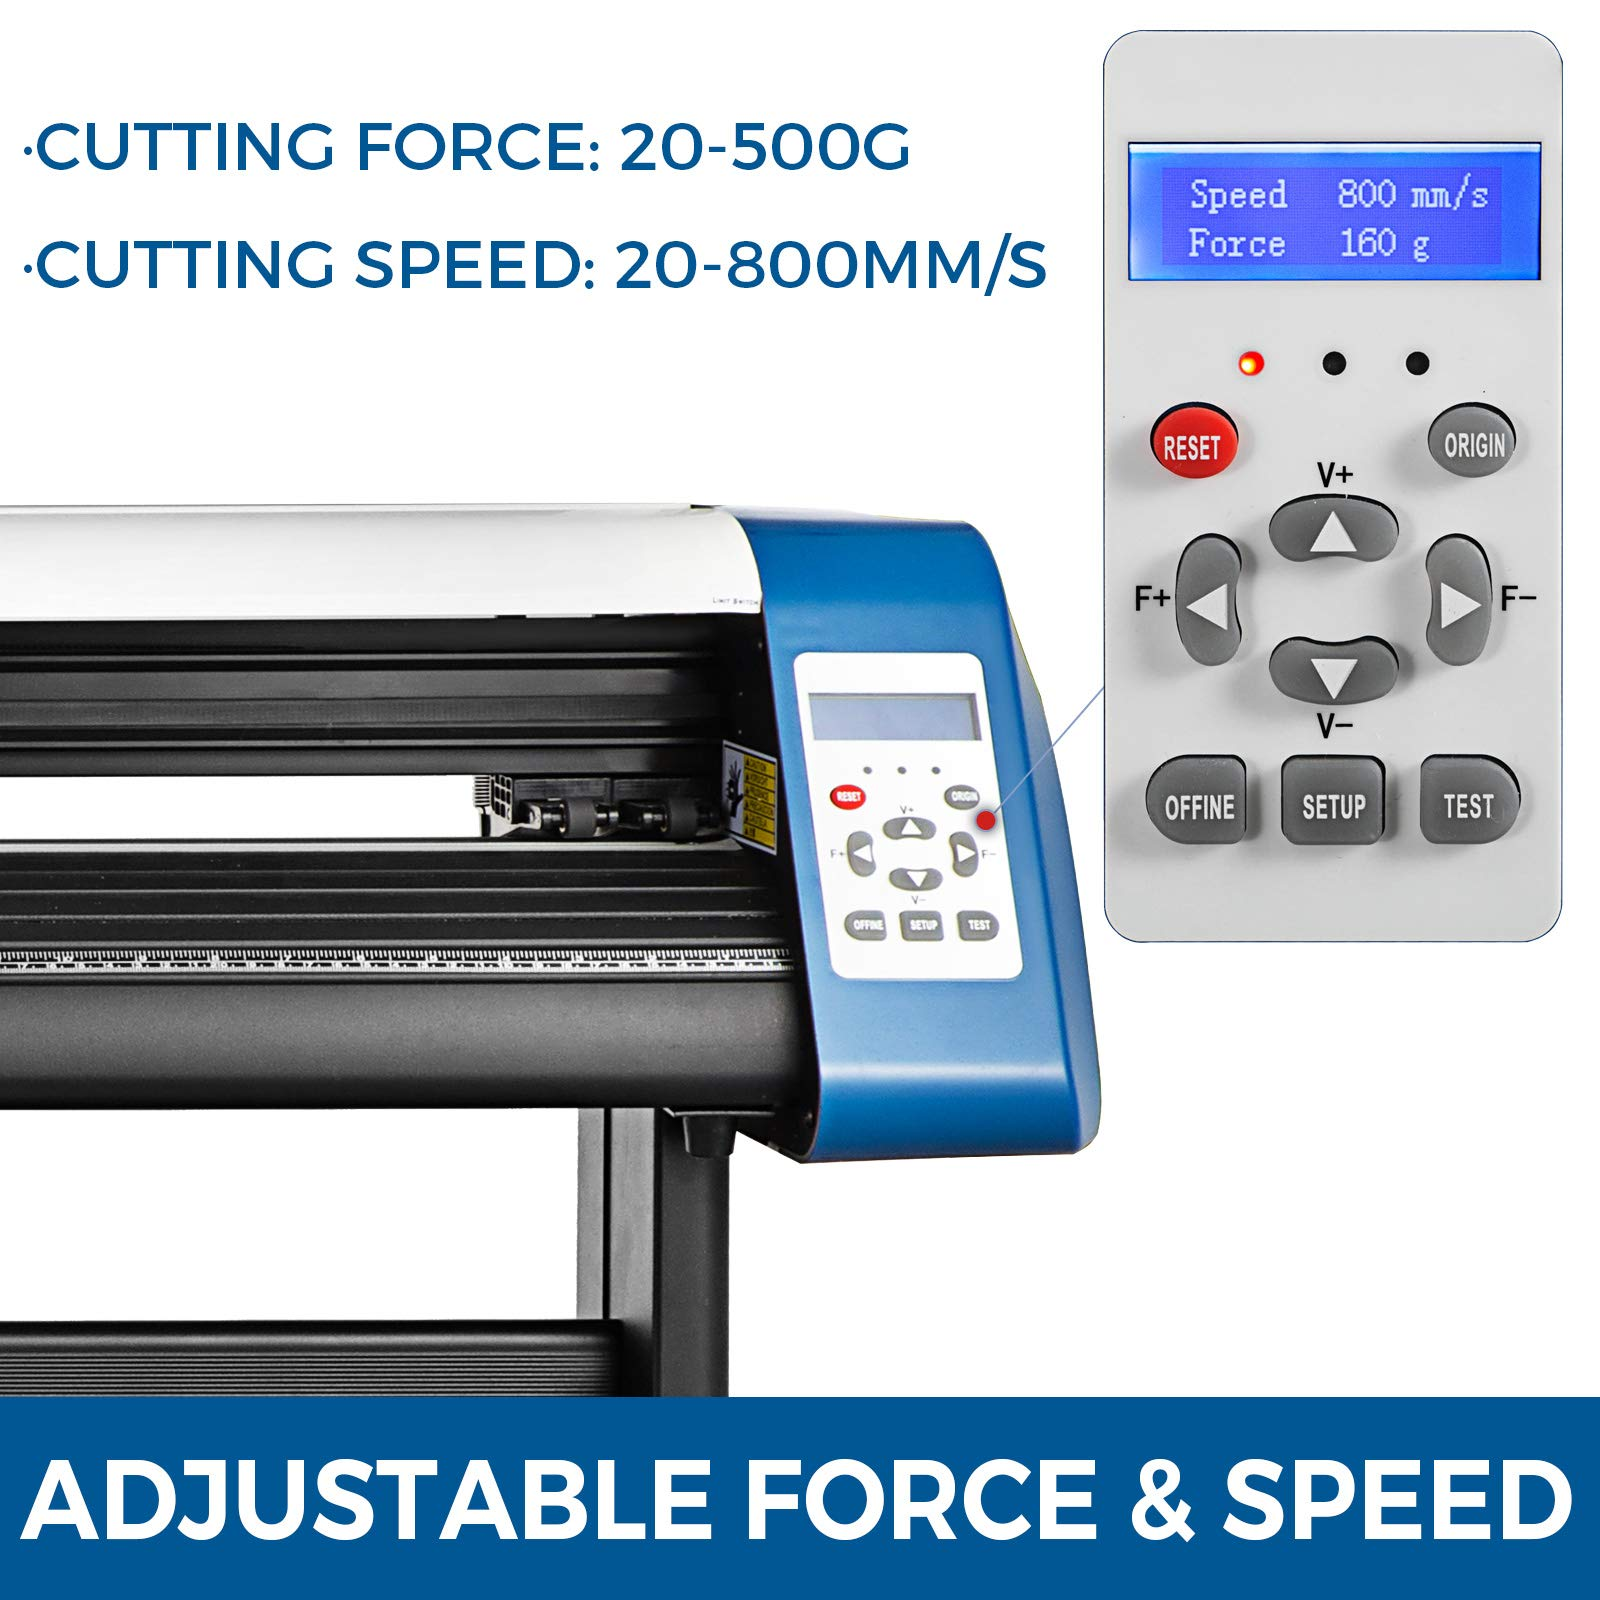 VEVOR Vinyl Cutter 28 inch Vinyl Cutter Machine Semi-Automatic DIY Vinyl Printer Cutter Machine Manual Positioning Sign Cutting with Floor Stand Signmaster Software by VEVOR (Image #5)